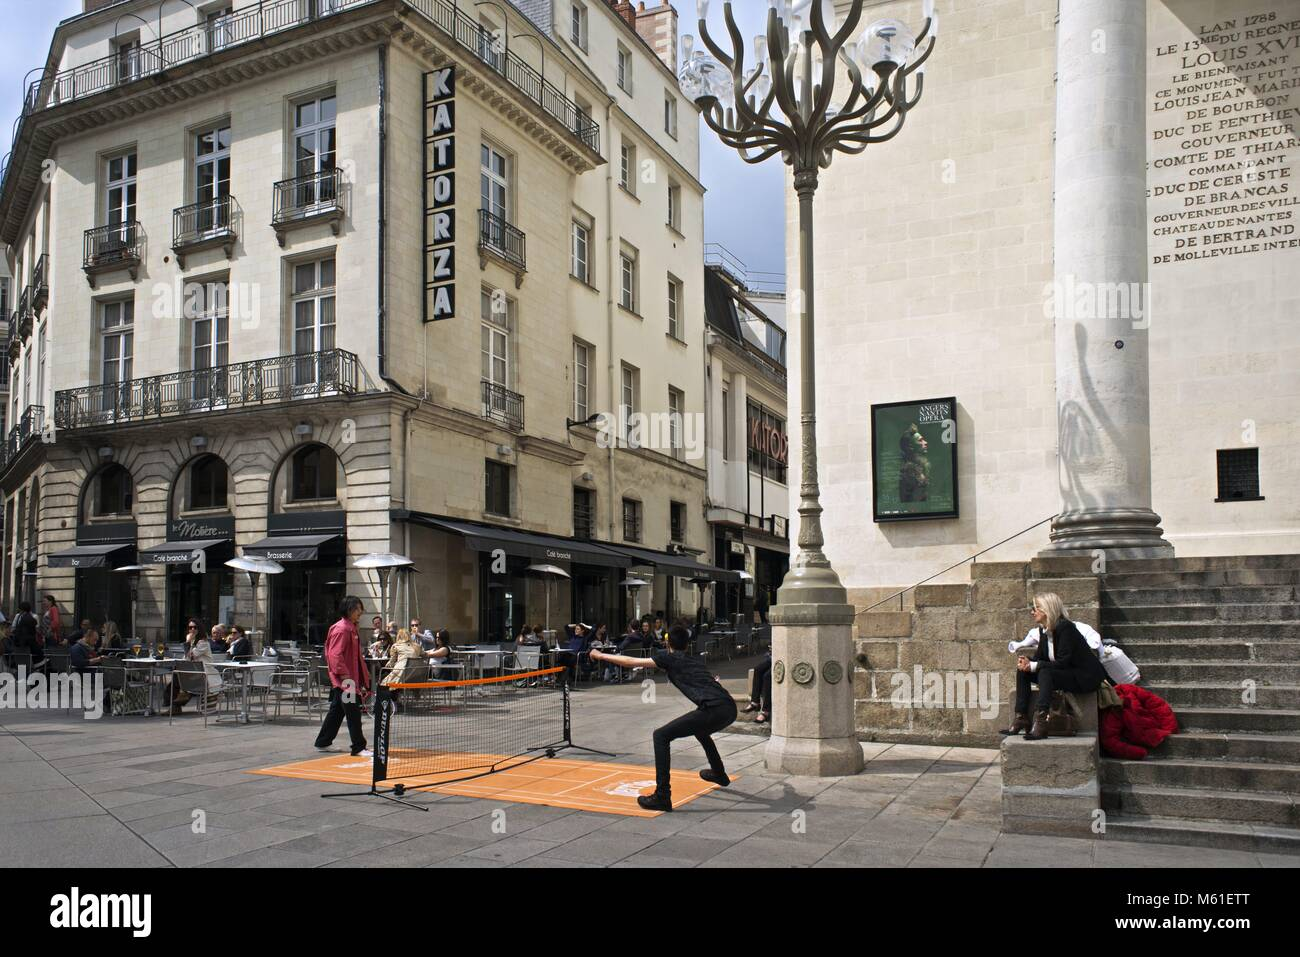 People Playing Mini Tennis In Front Of A Graslin Theater In The